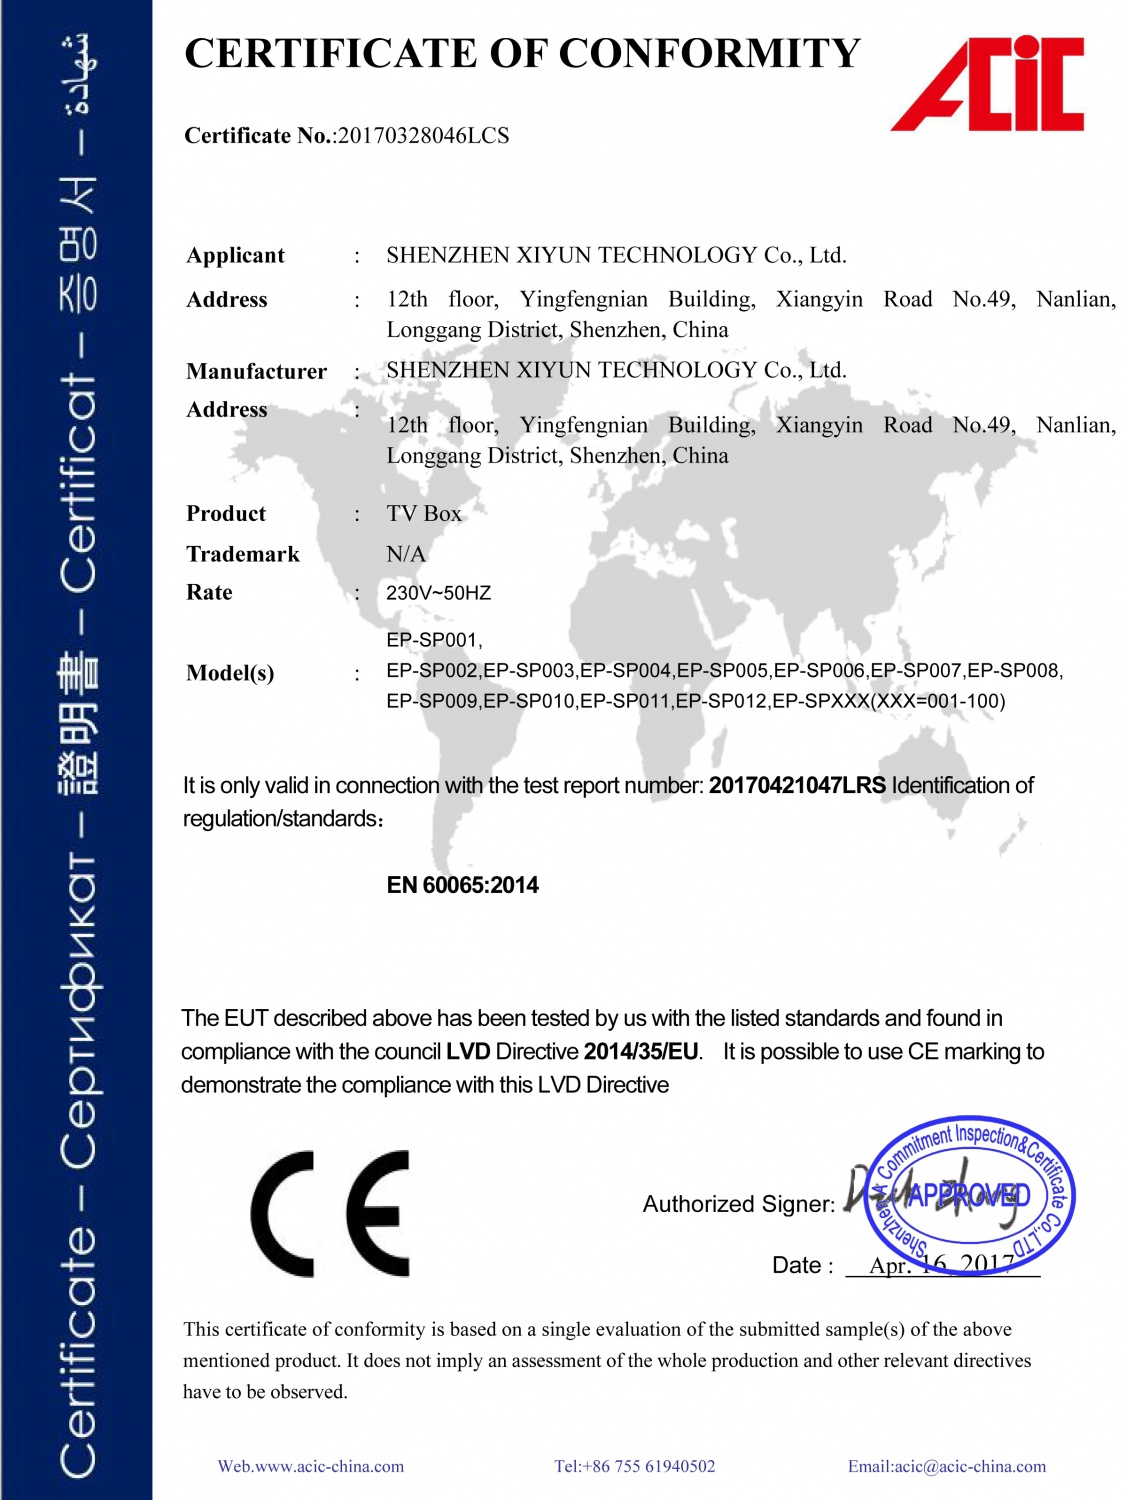 Android TV Box Factory IPTV Box CE Certificate